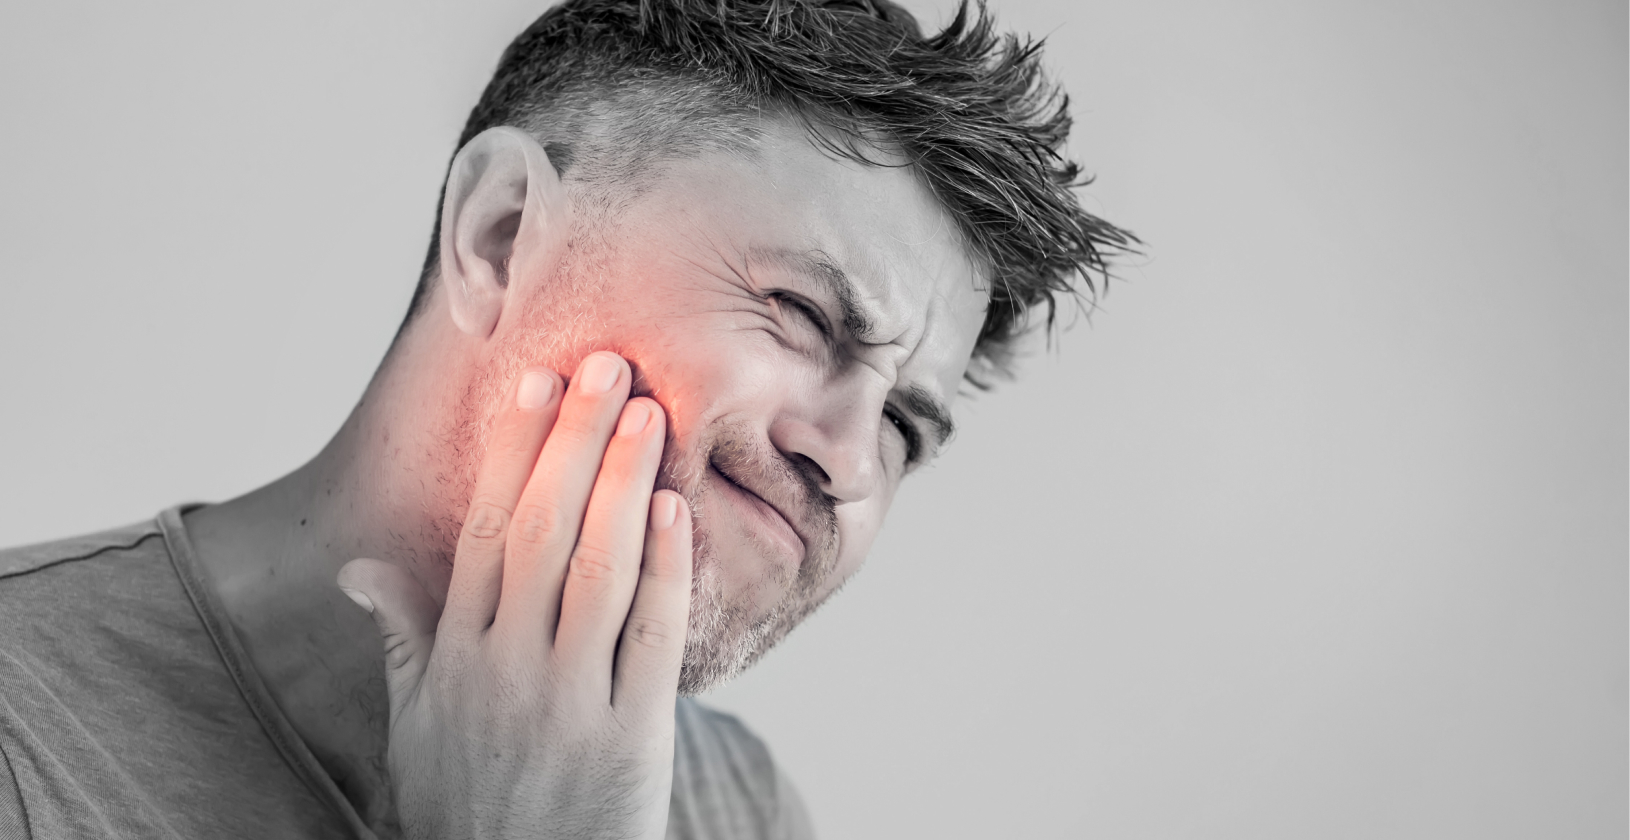 Tandara Tooth Abscesses vs Tooth Infections What is the Difference